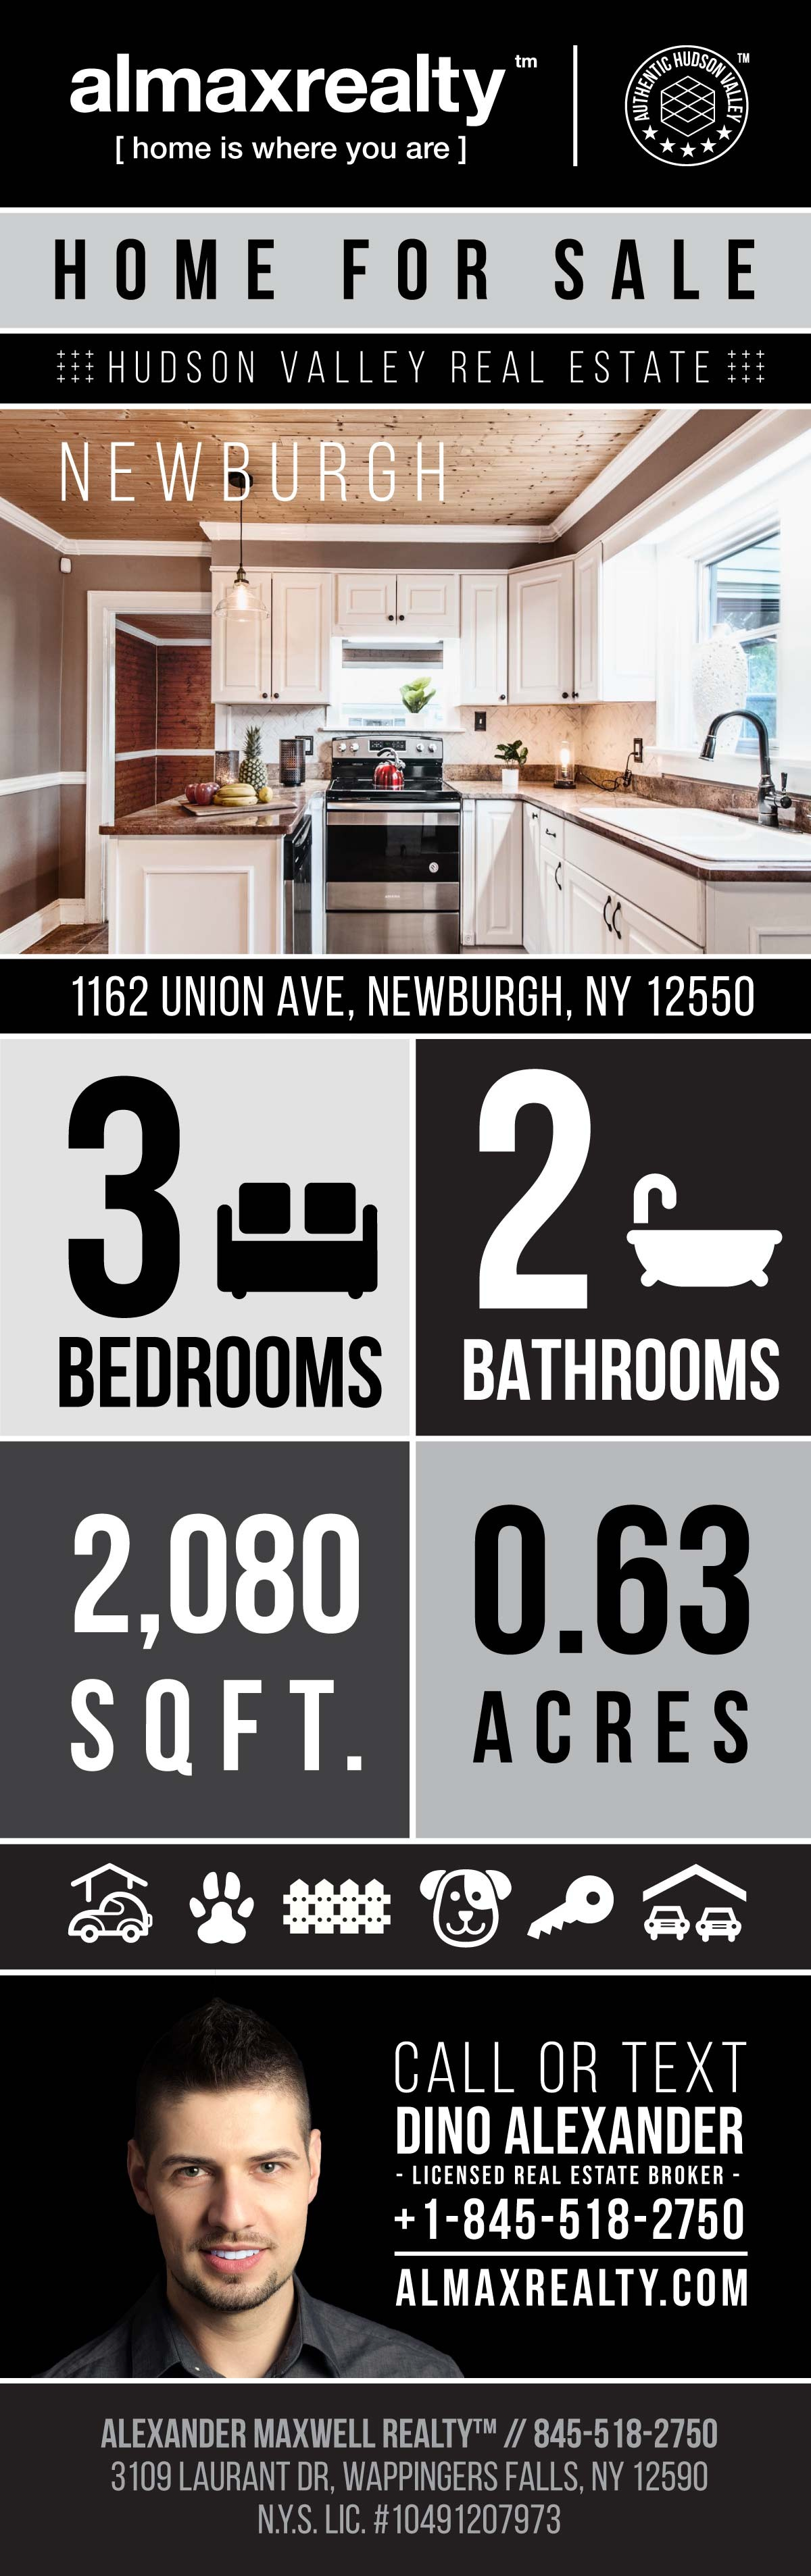 Infographic - Hudson Valley Home for Sale in Newburgh, NY - Alexander Maxwell Realty - Dino Alexander